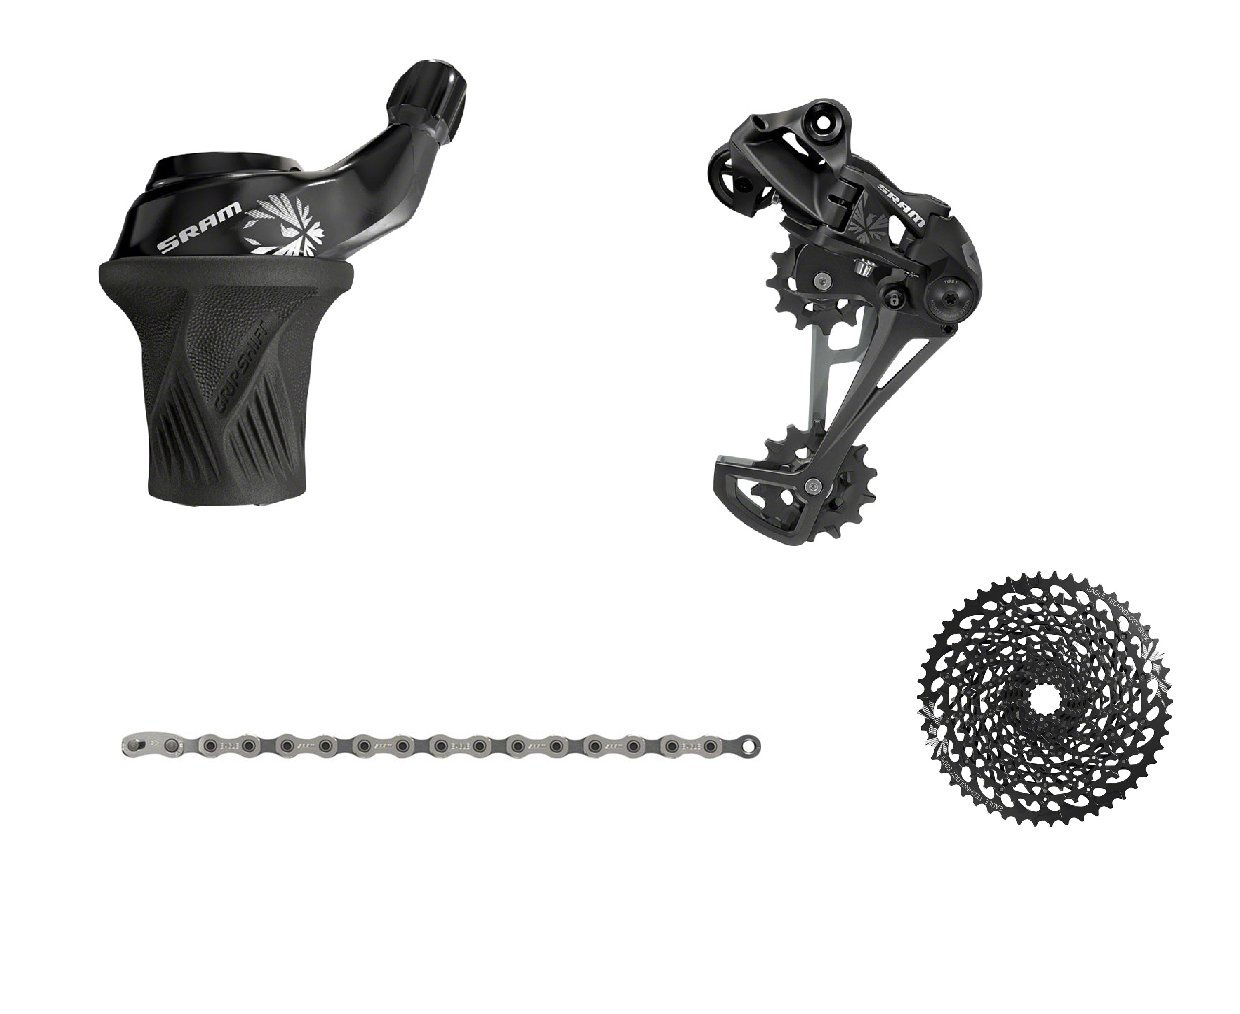 SRAM GX Eagle Gripshift 4-Piece Groupset Without Crankset